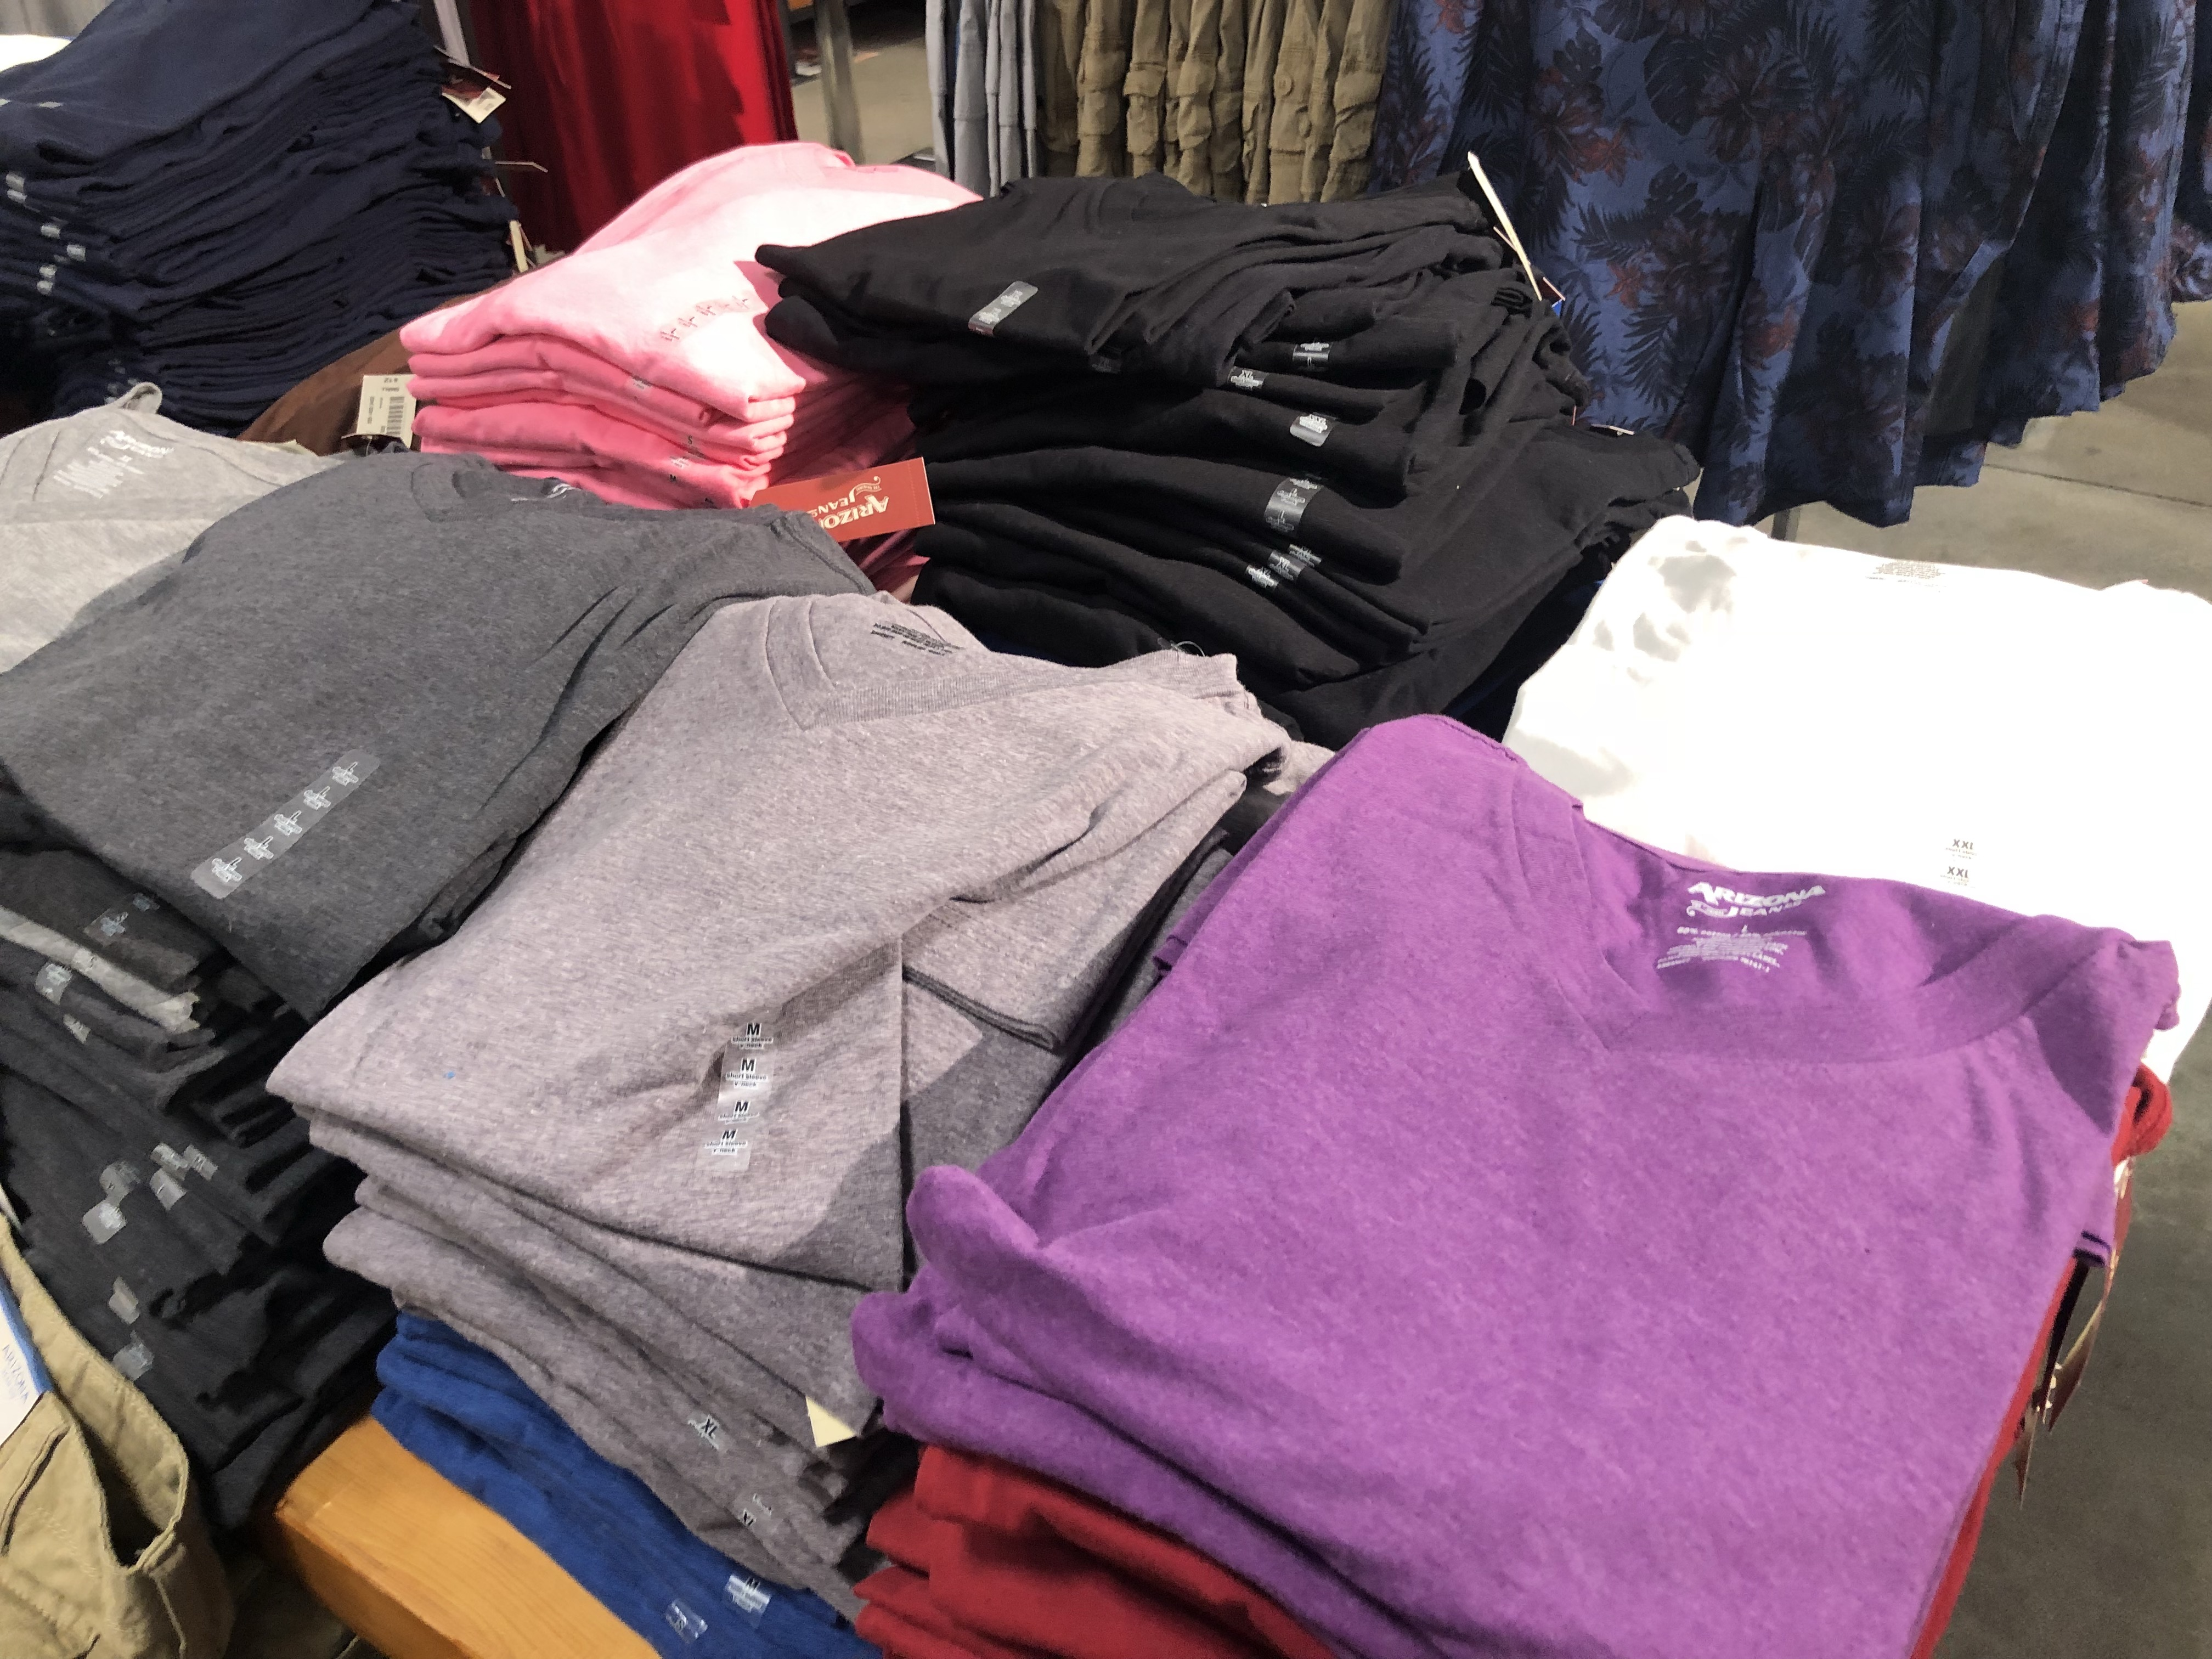 Arizona Men's Tees on Display at JCPenney